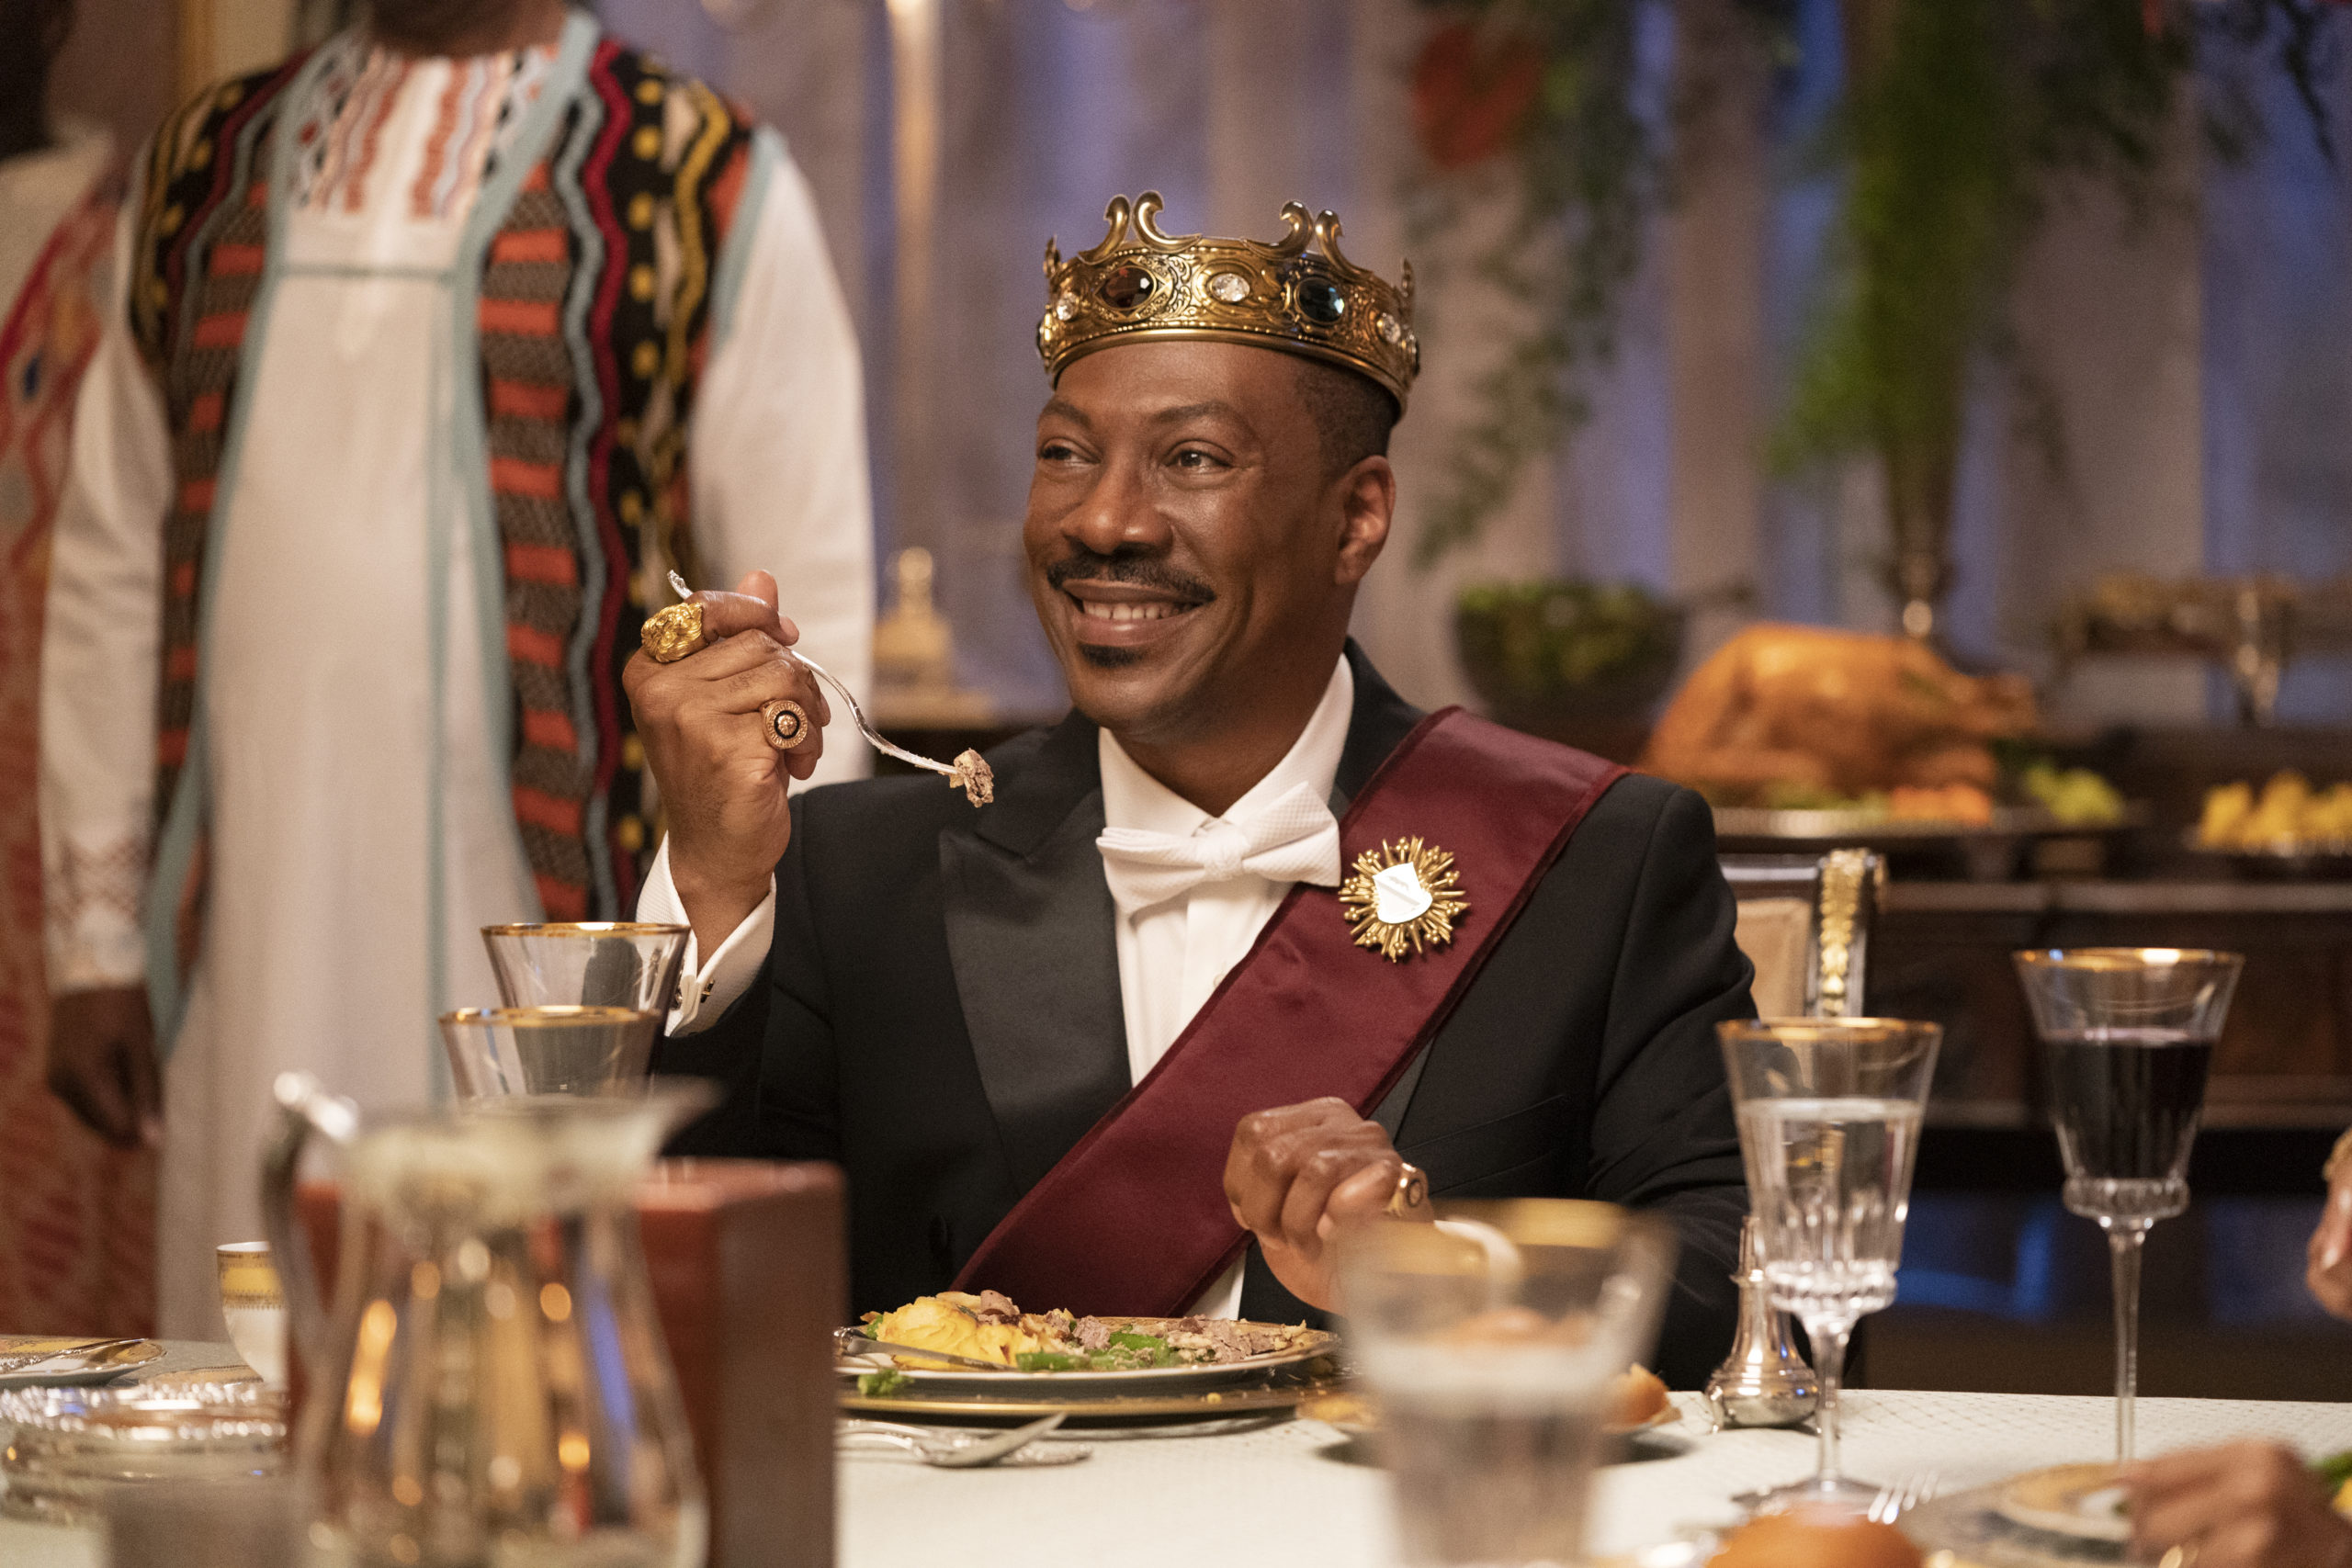 SMALL SCREEN: This weekend we ain't watching: 'Coming 2 America'